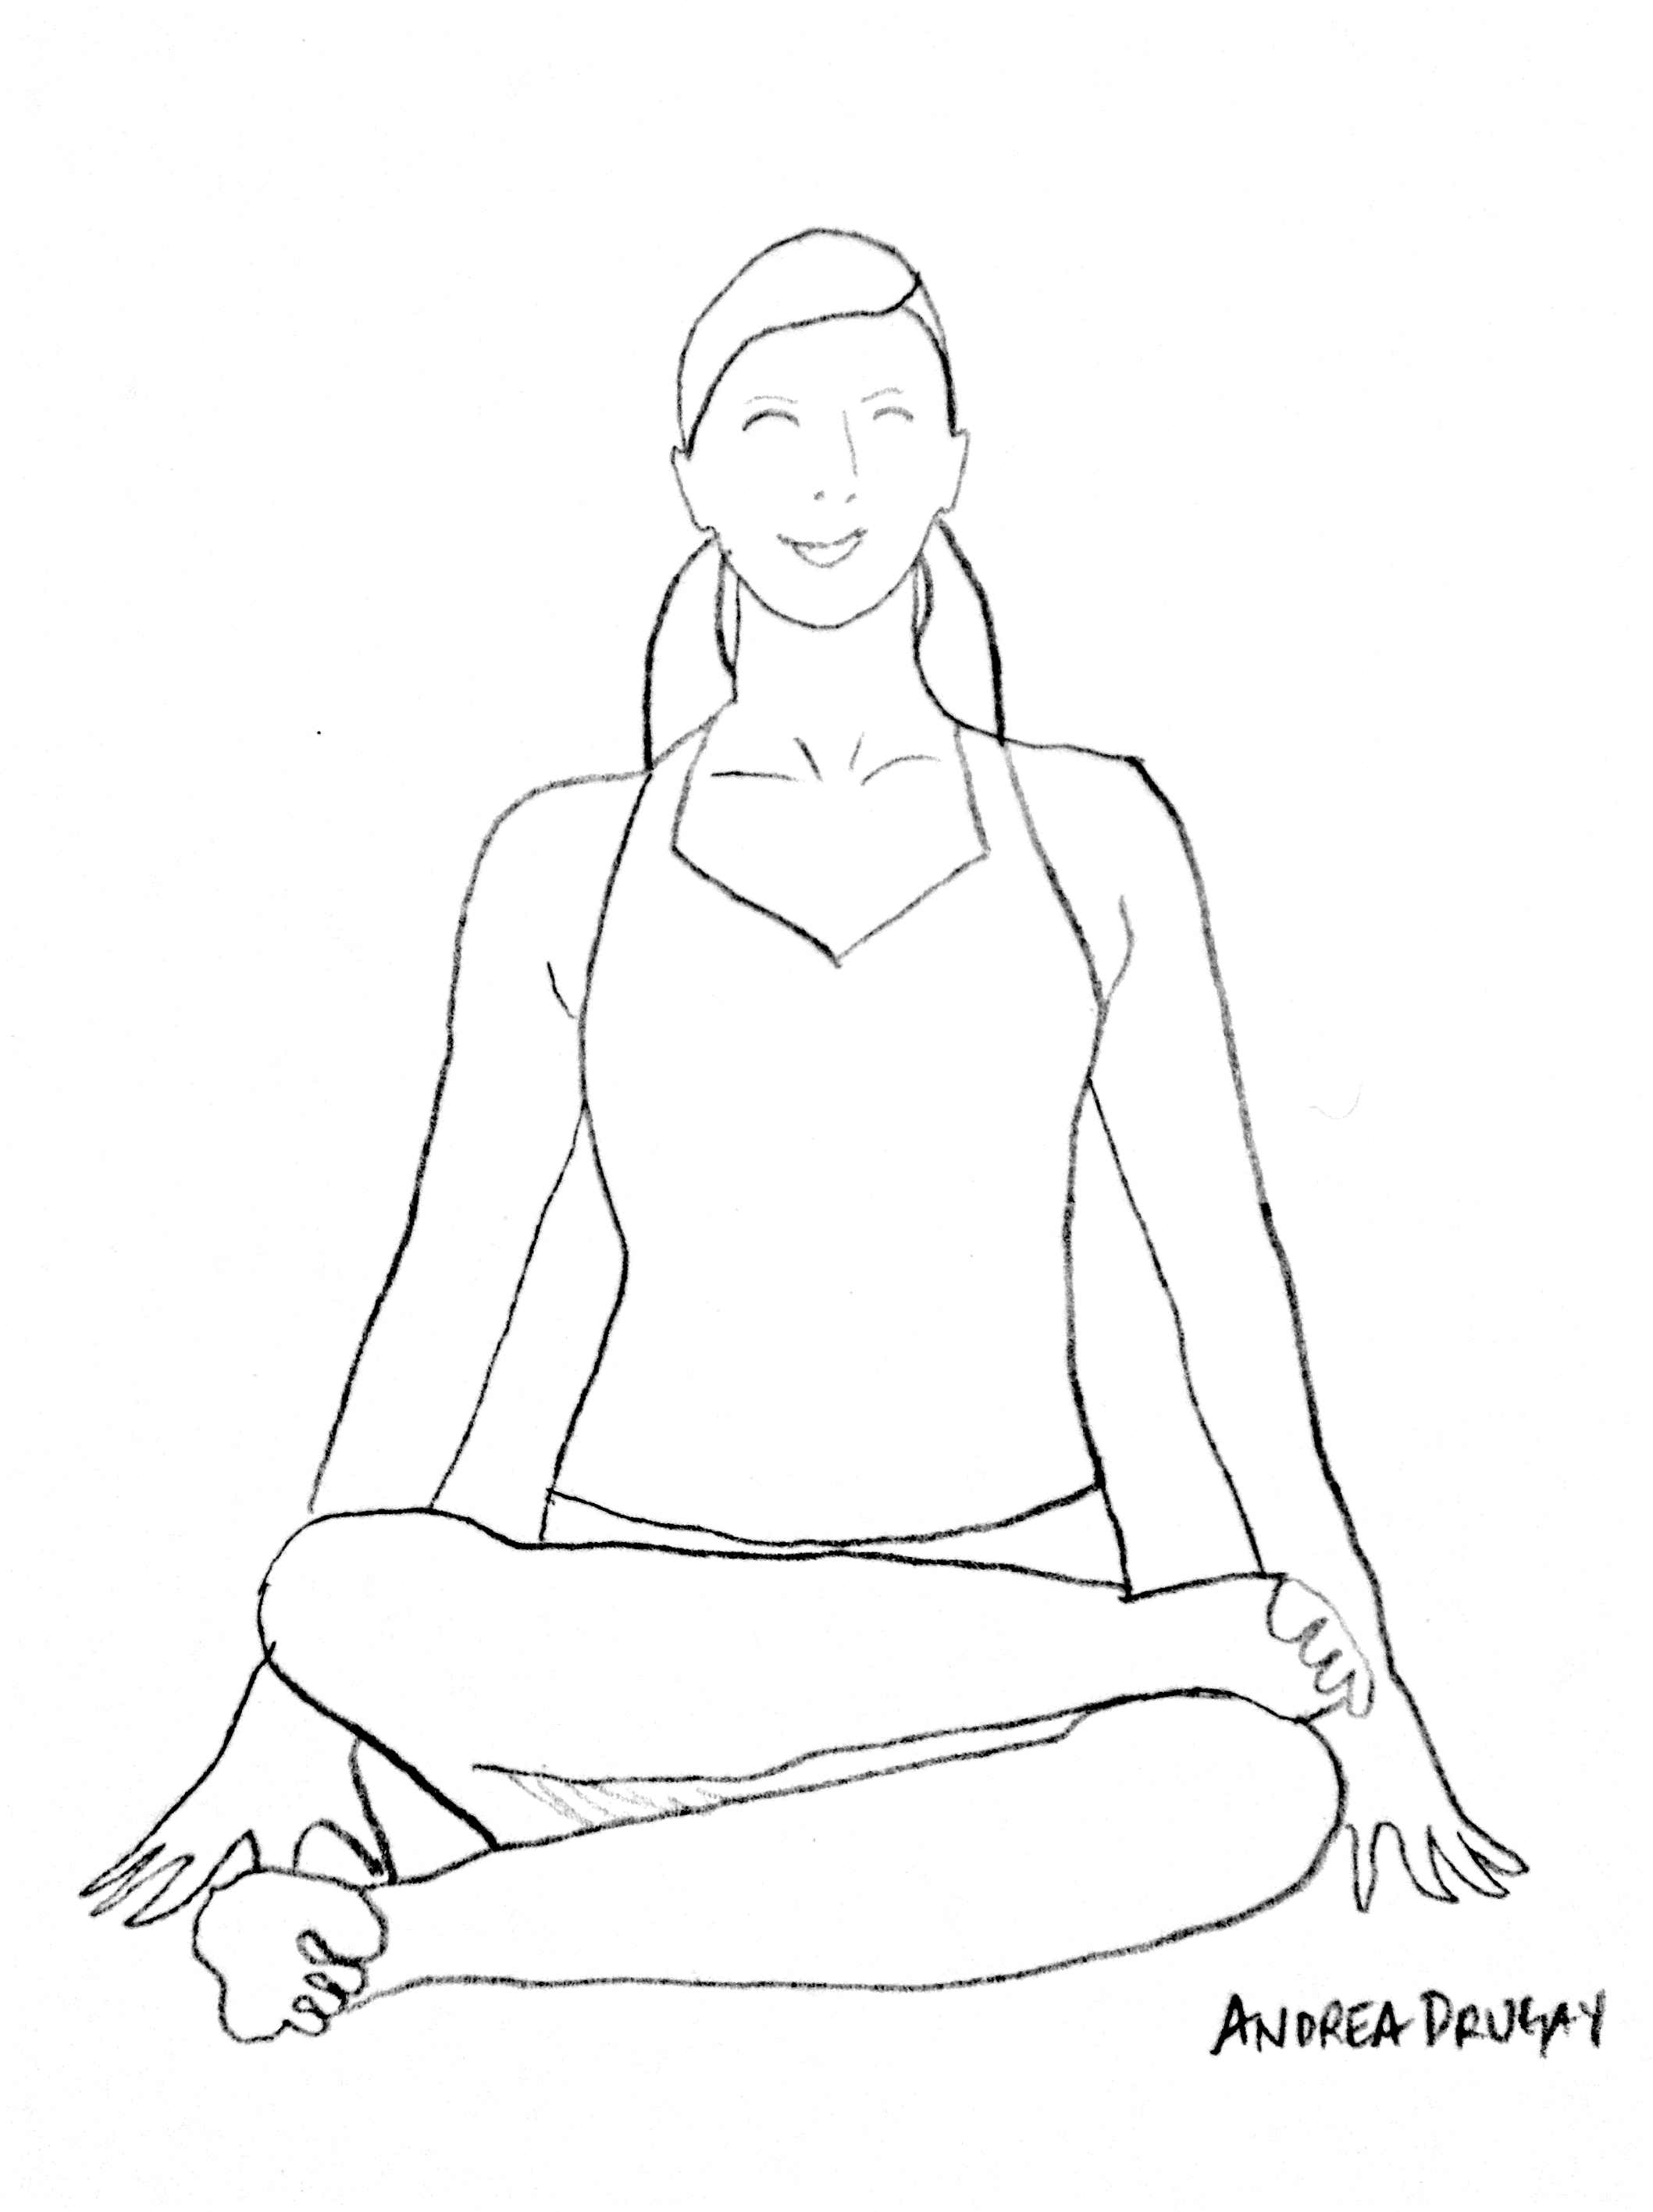 Yoga Pose Drawing at GetDrawings.com | Free for personal use Yoga ...